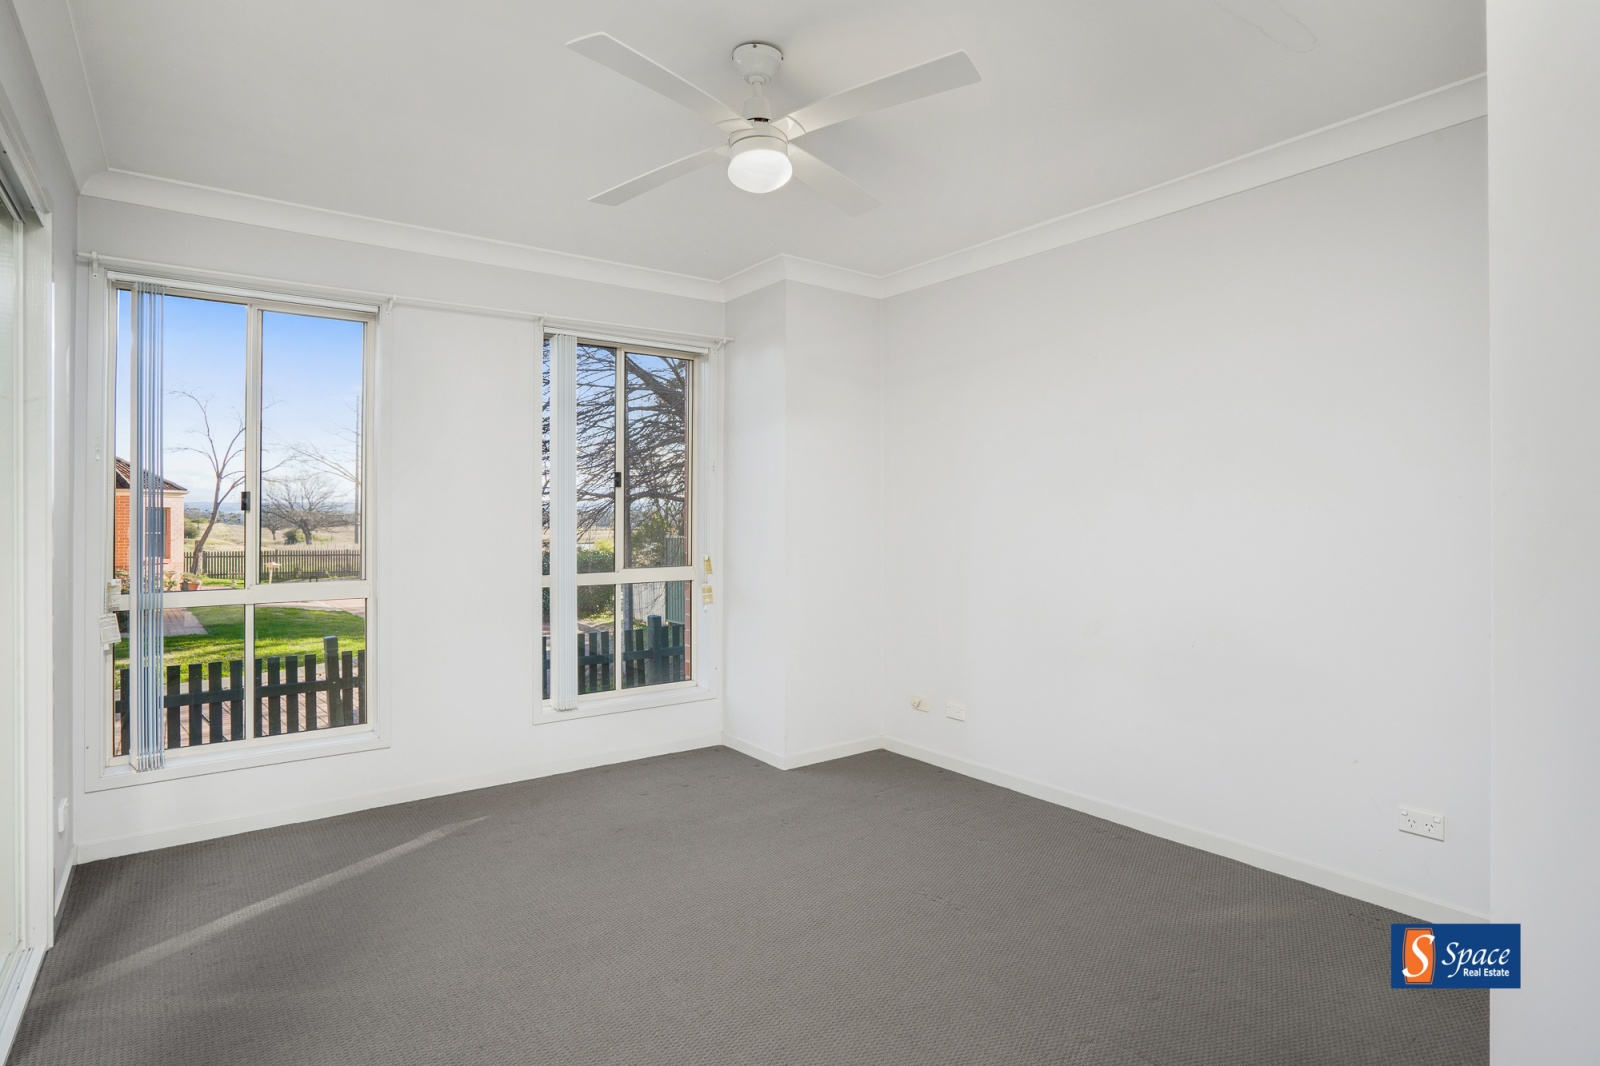 4 Brindabella Lane,Narellan,NSW,3 Bedrooms Bedrooms,1 BathroomBathrooms,House,Brindabella Lane,1409